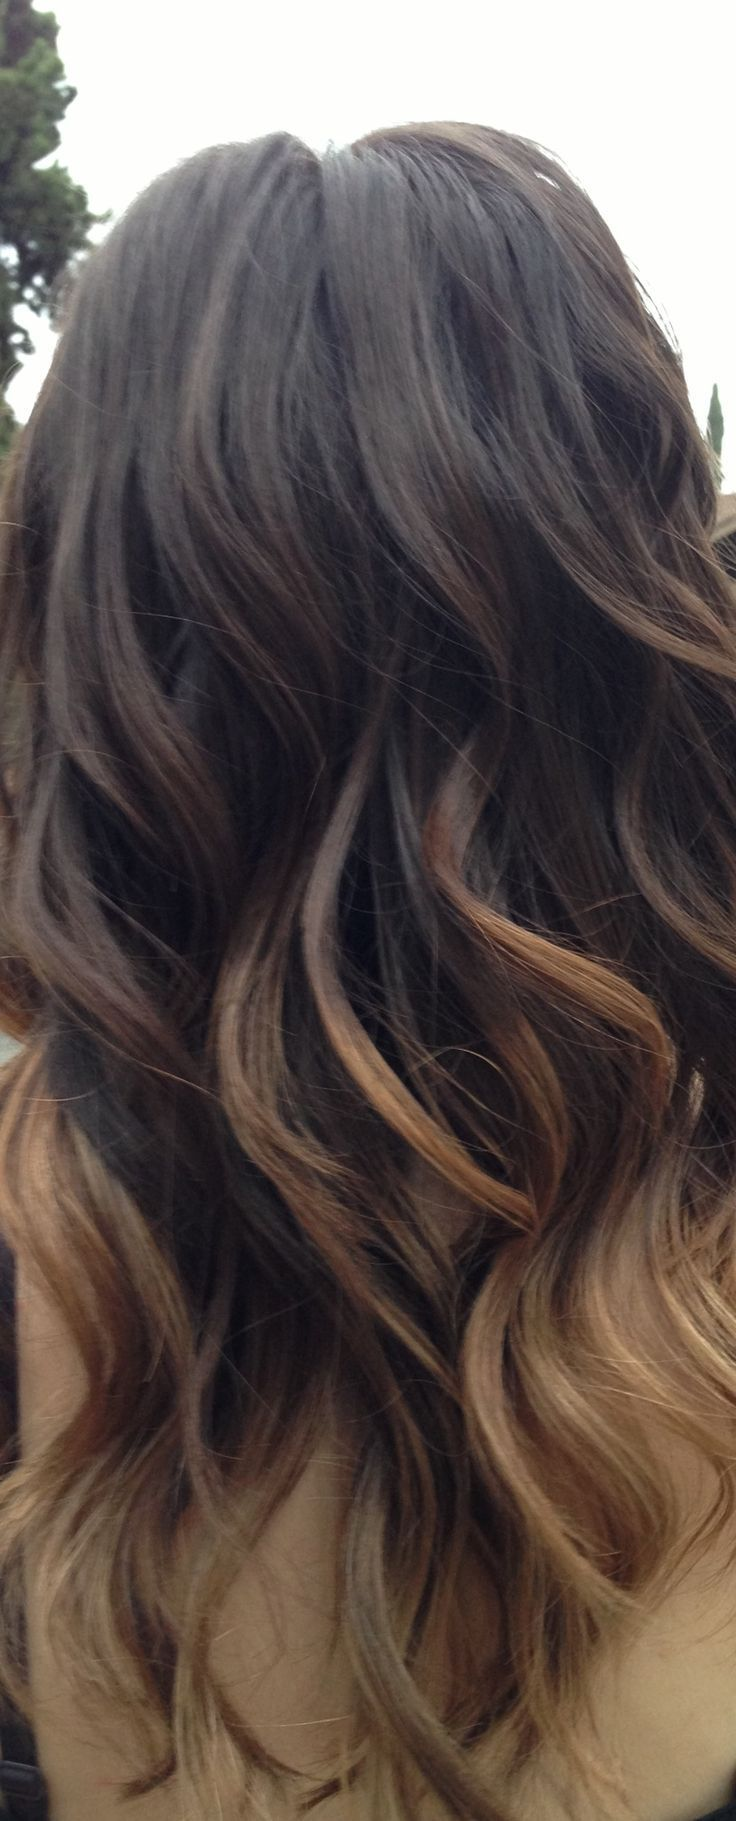 Ombre Hair 684 Hairstyles Pinterest Ombre Hair And Ombre